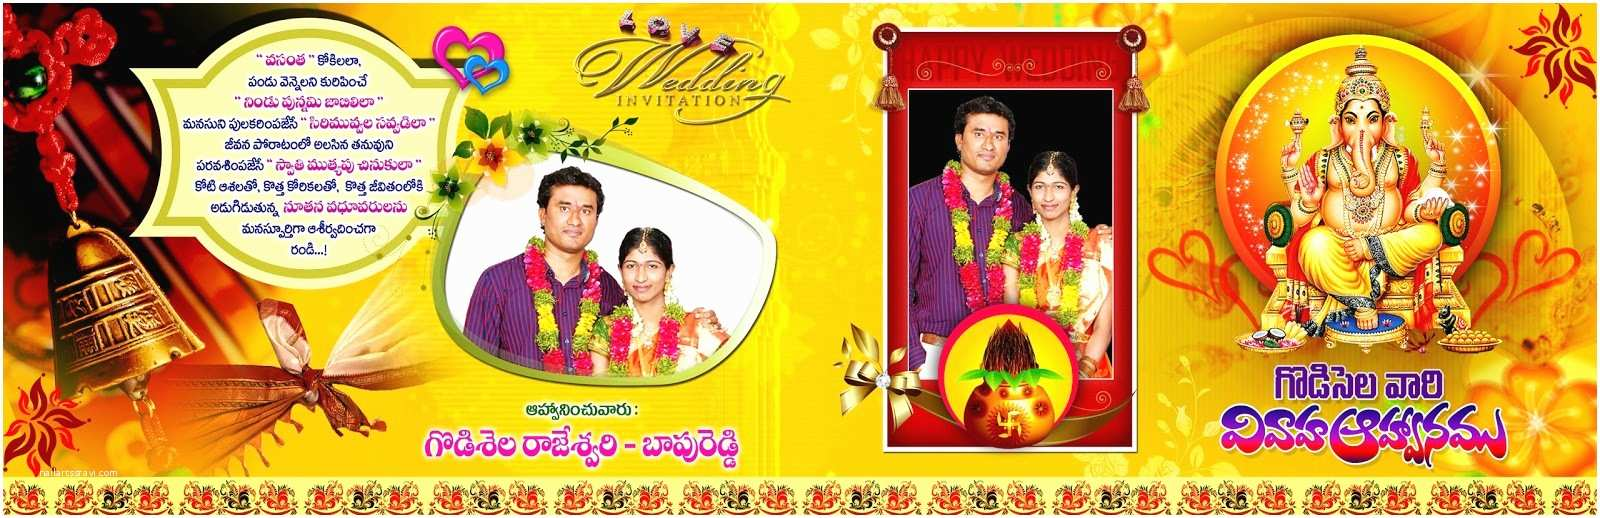 Indian Wedding Invitation Card Maker software Free Download Wedding Invitation Card Psd Design Template Free